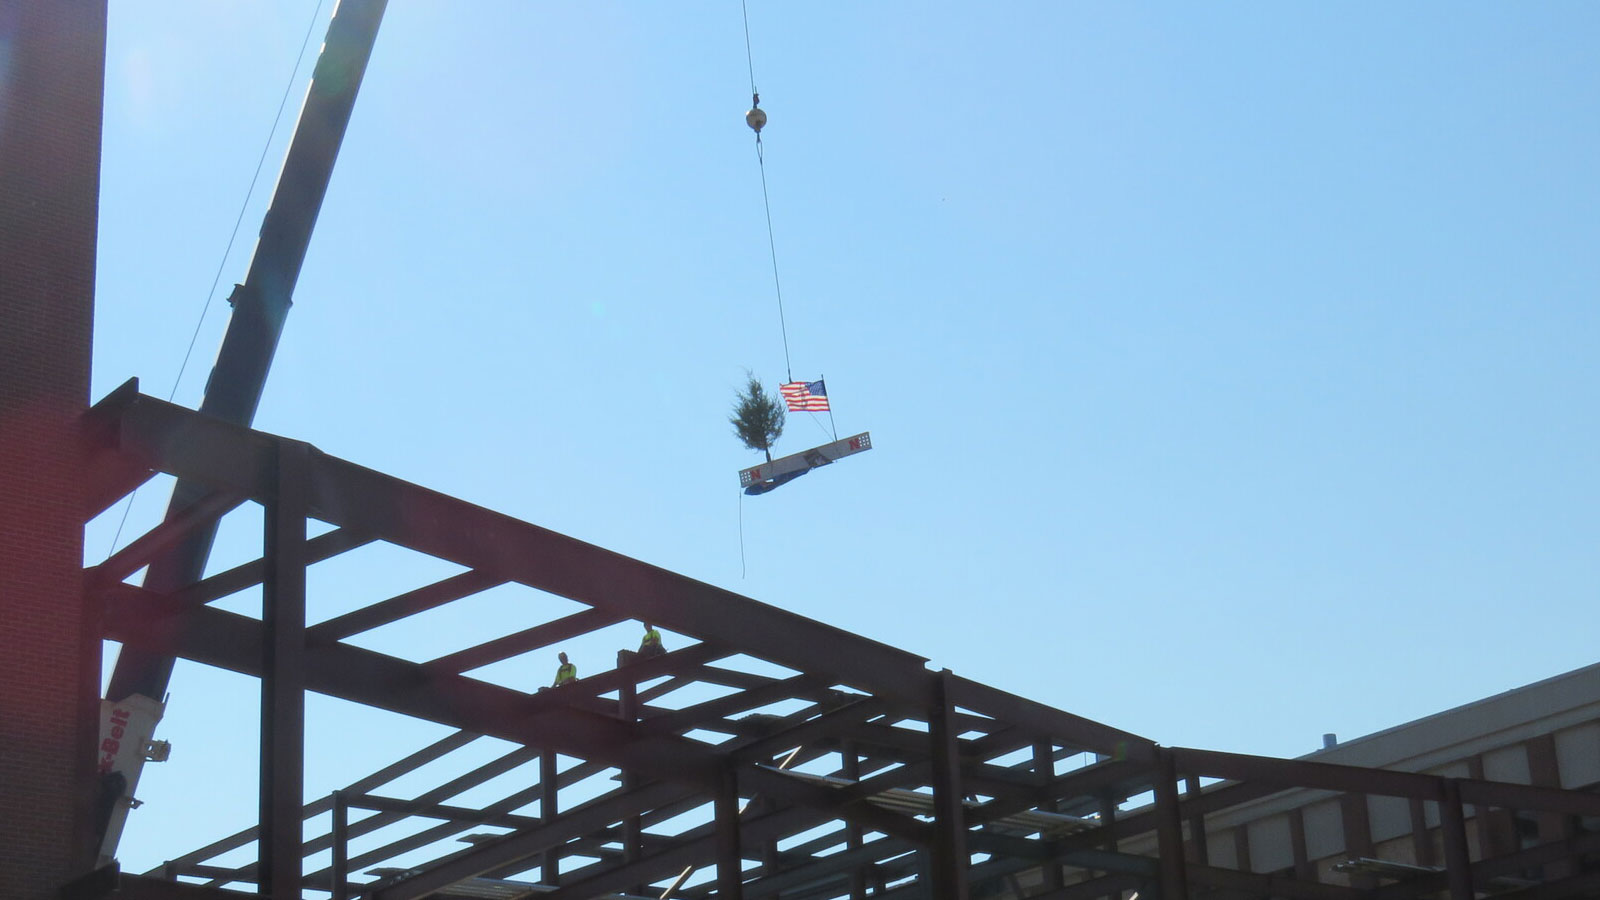 The final topping off beam is being lowered into place on the new Link/Scott Engineering Center addition.